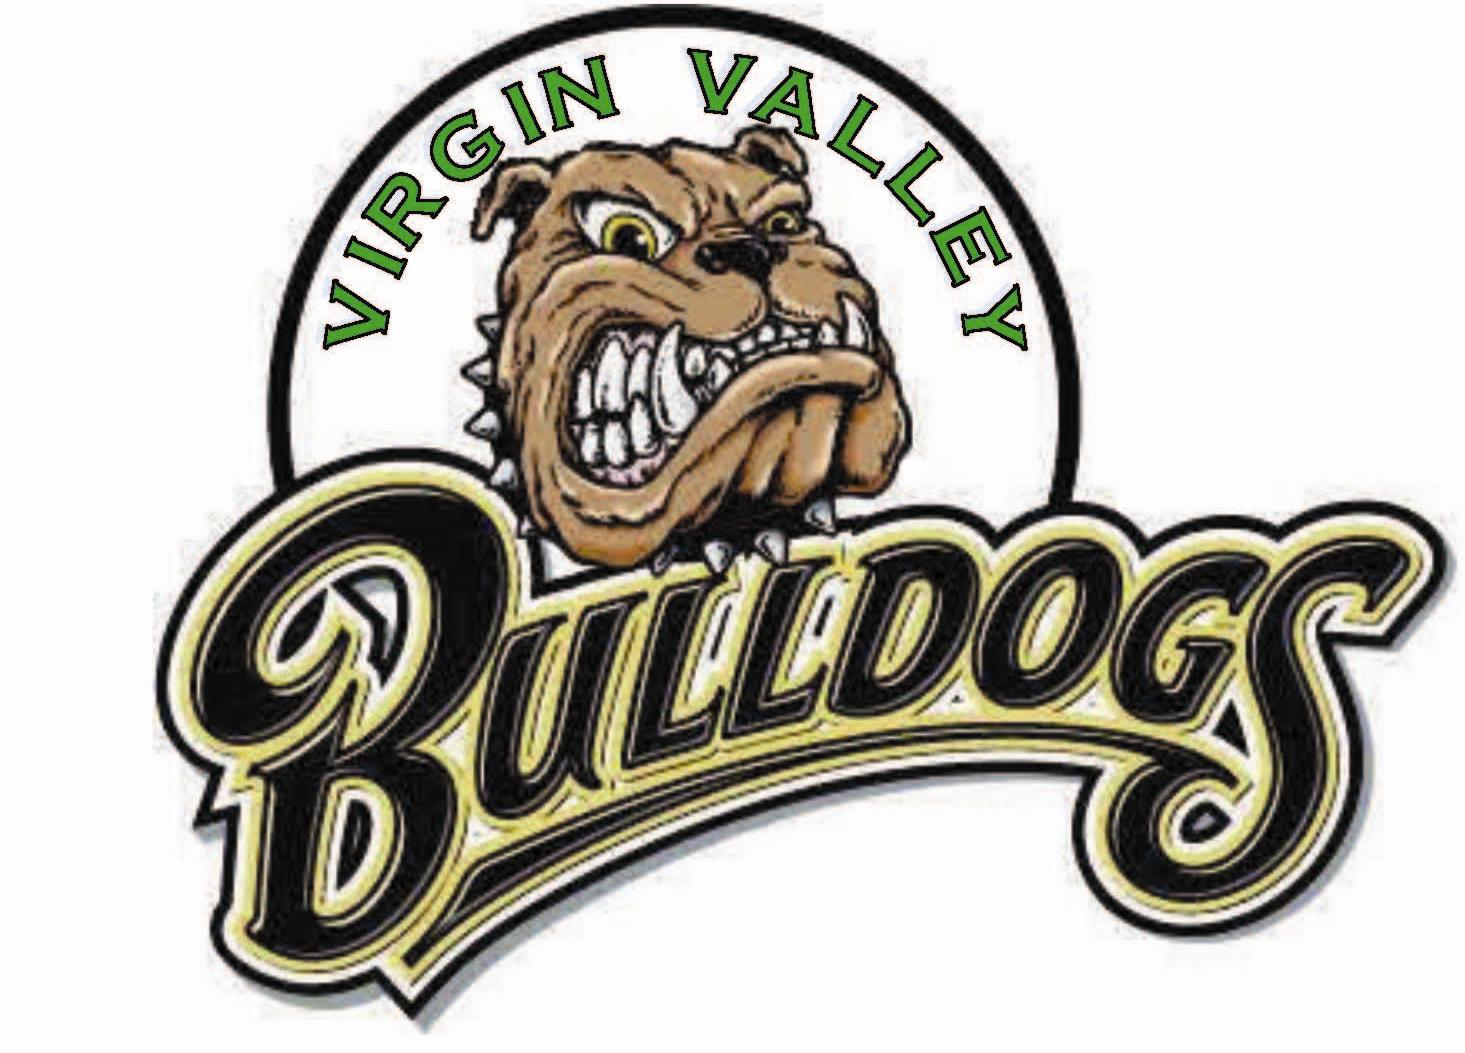 Virgin Valley places fourth in Cactus Classic